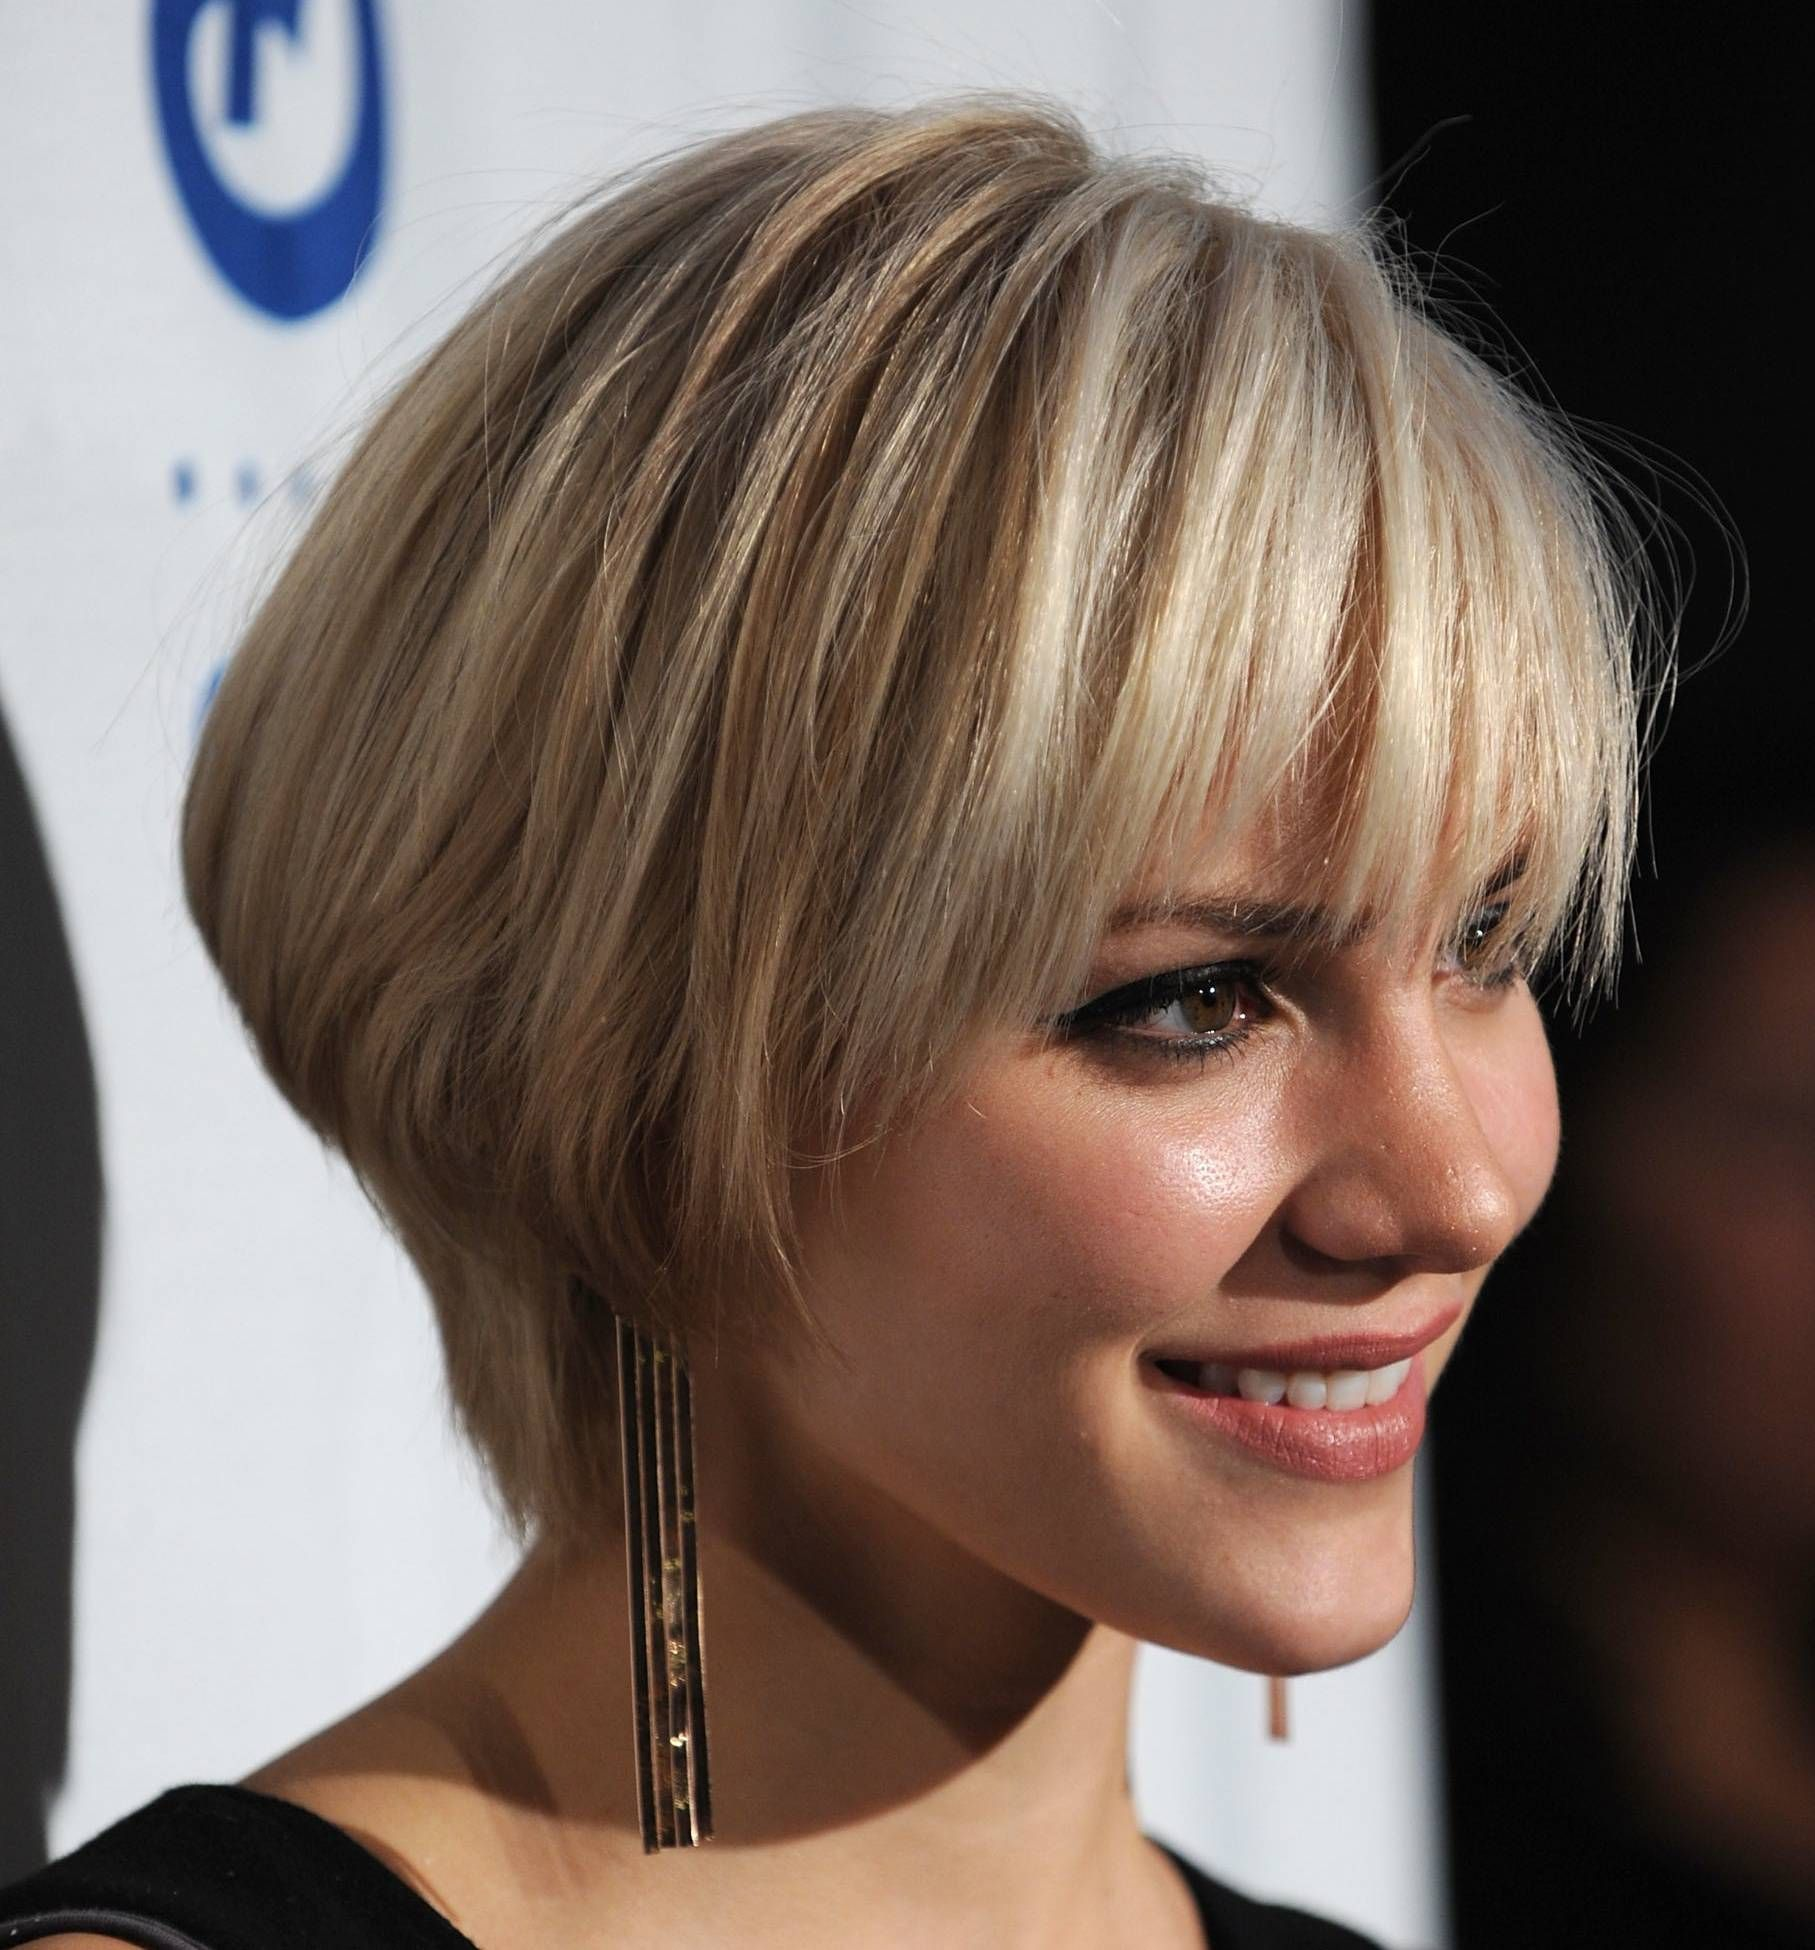 hairstyles for fat faces | bob hair cuts for girls, hairstyles